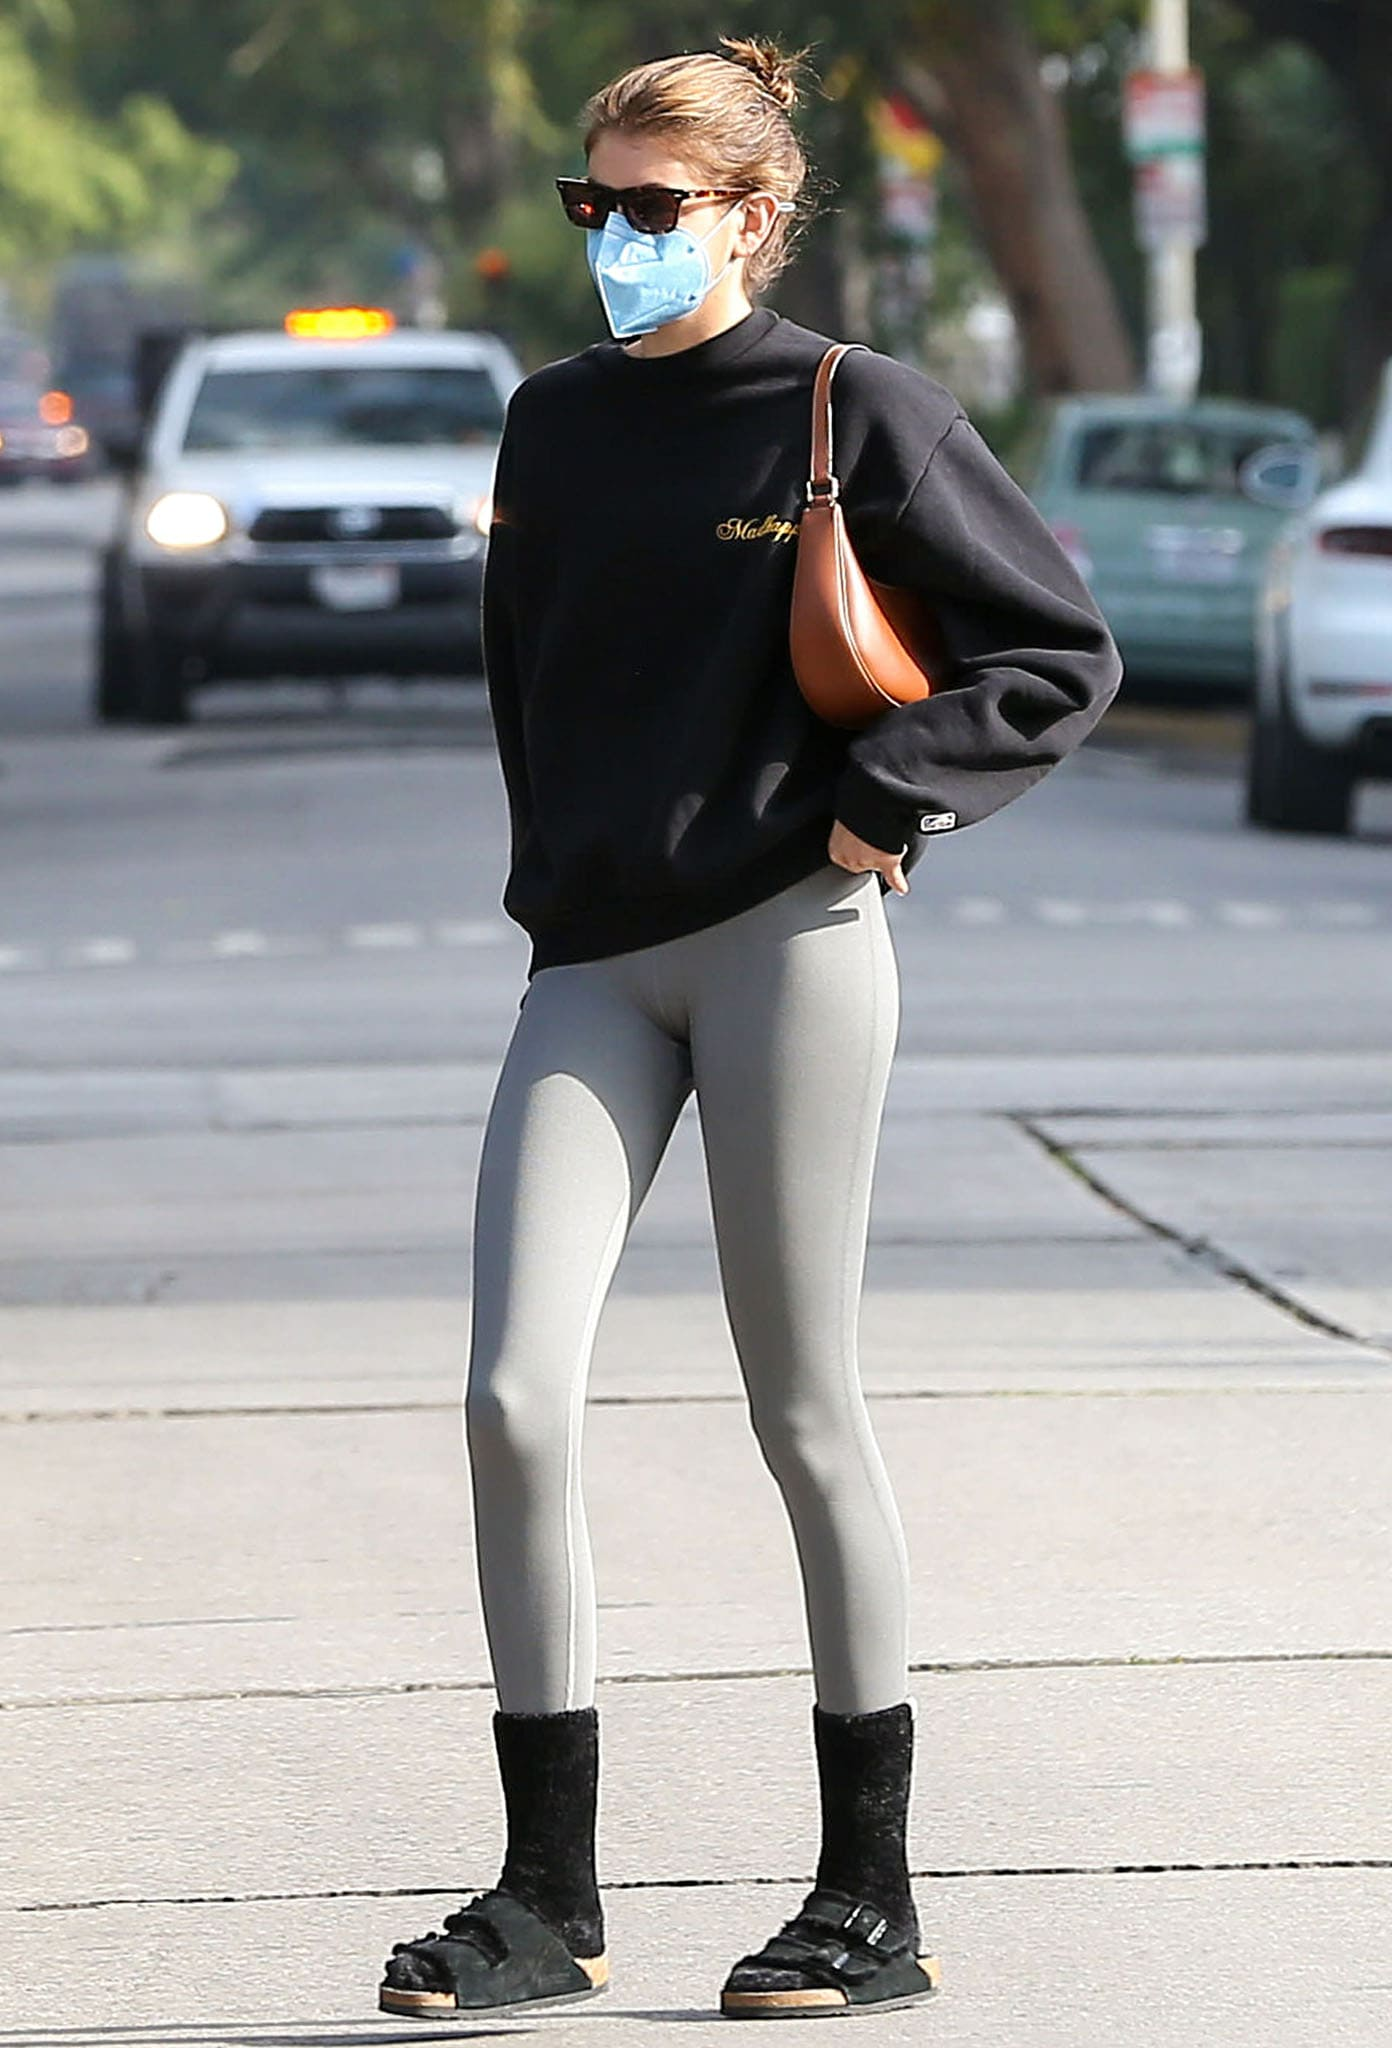 Kaia Gerber teams a black Madhappy Lakers sweatshirt with fitted gray leggings